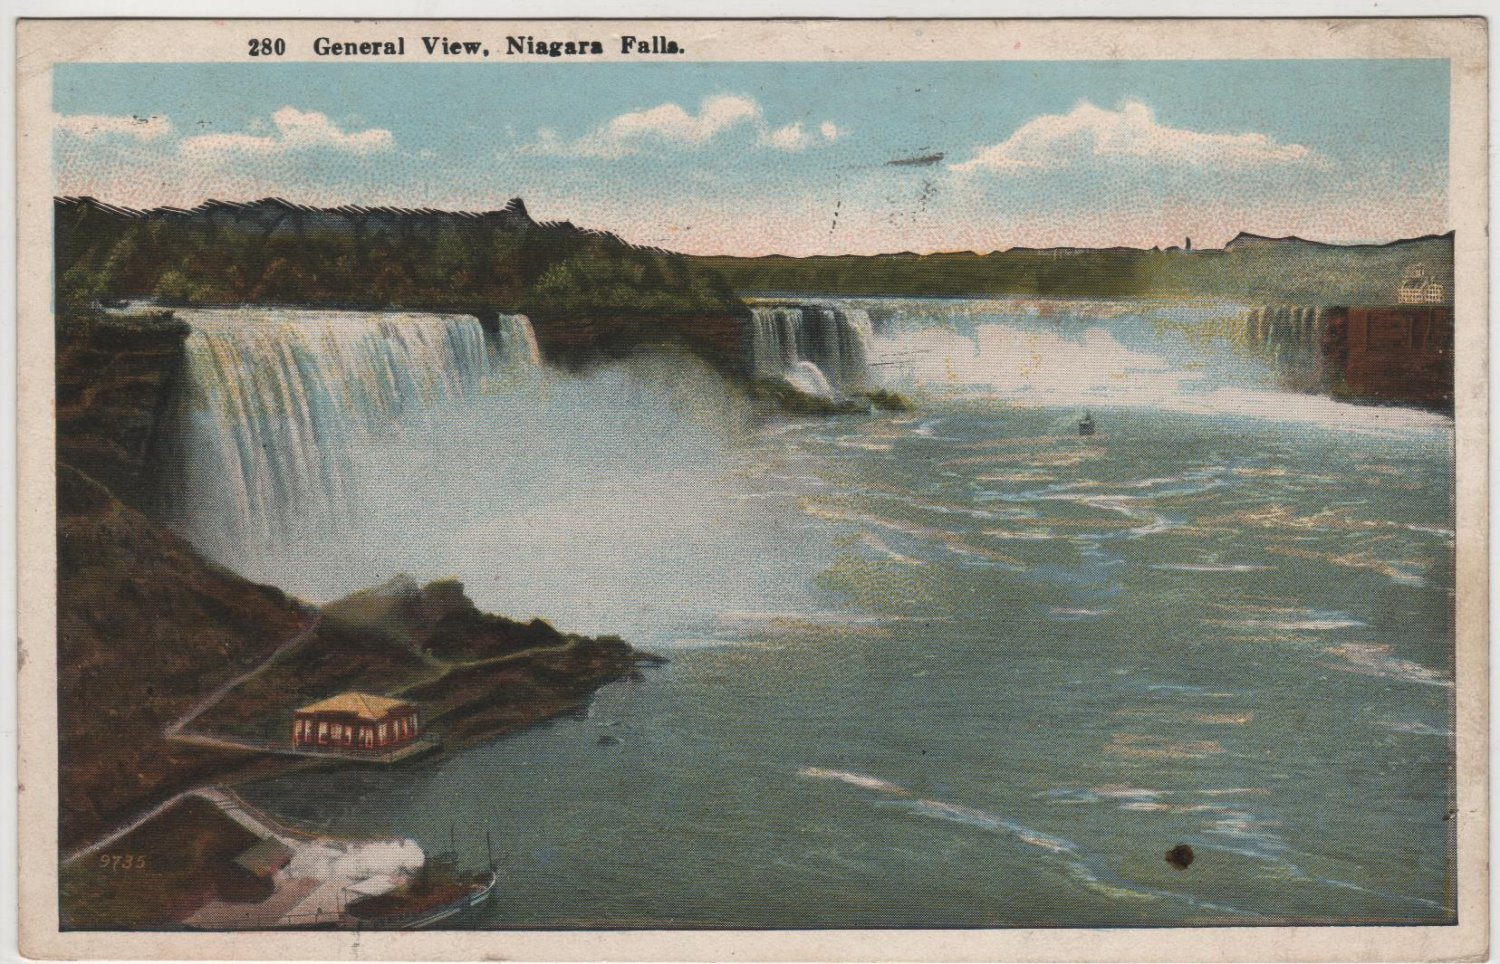 Niagara Falls New York Postcard, General View of The Falls, Full Color c.1921